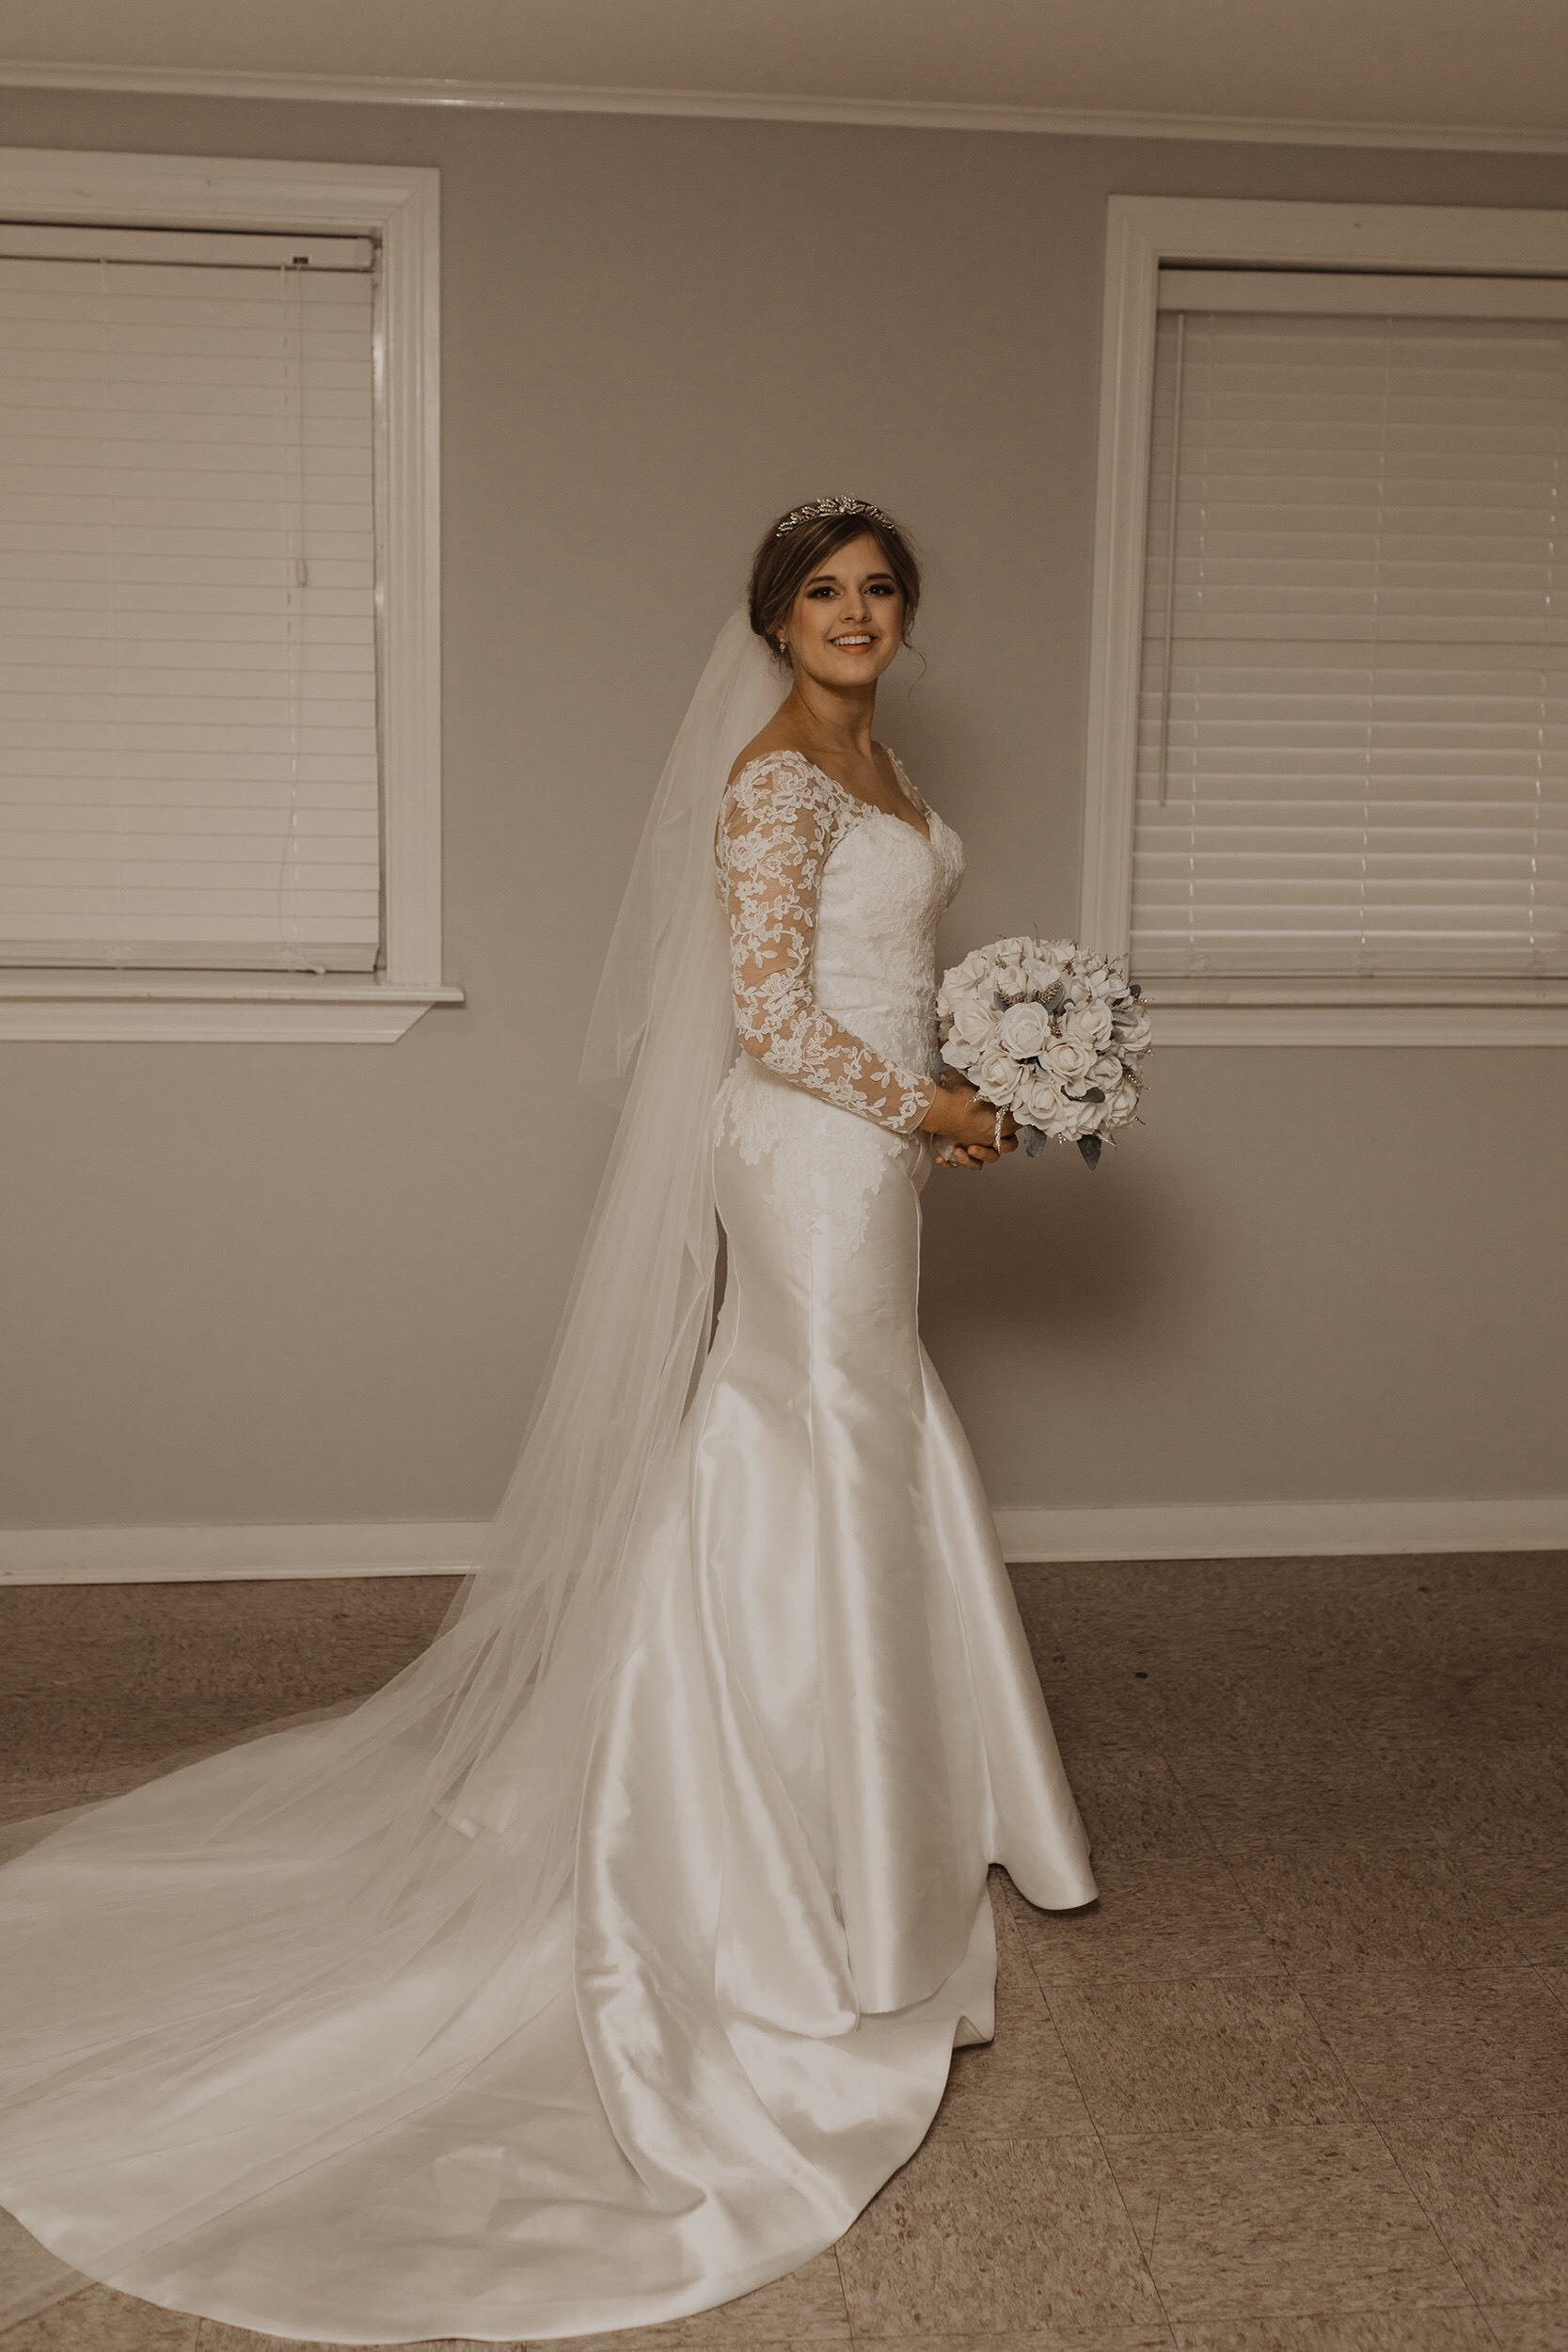 Custom Anomalie wedding dress with fit and flare shape, lace sleeves, sweetheart neckline, chapel train